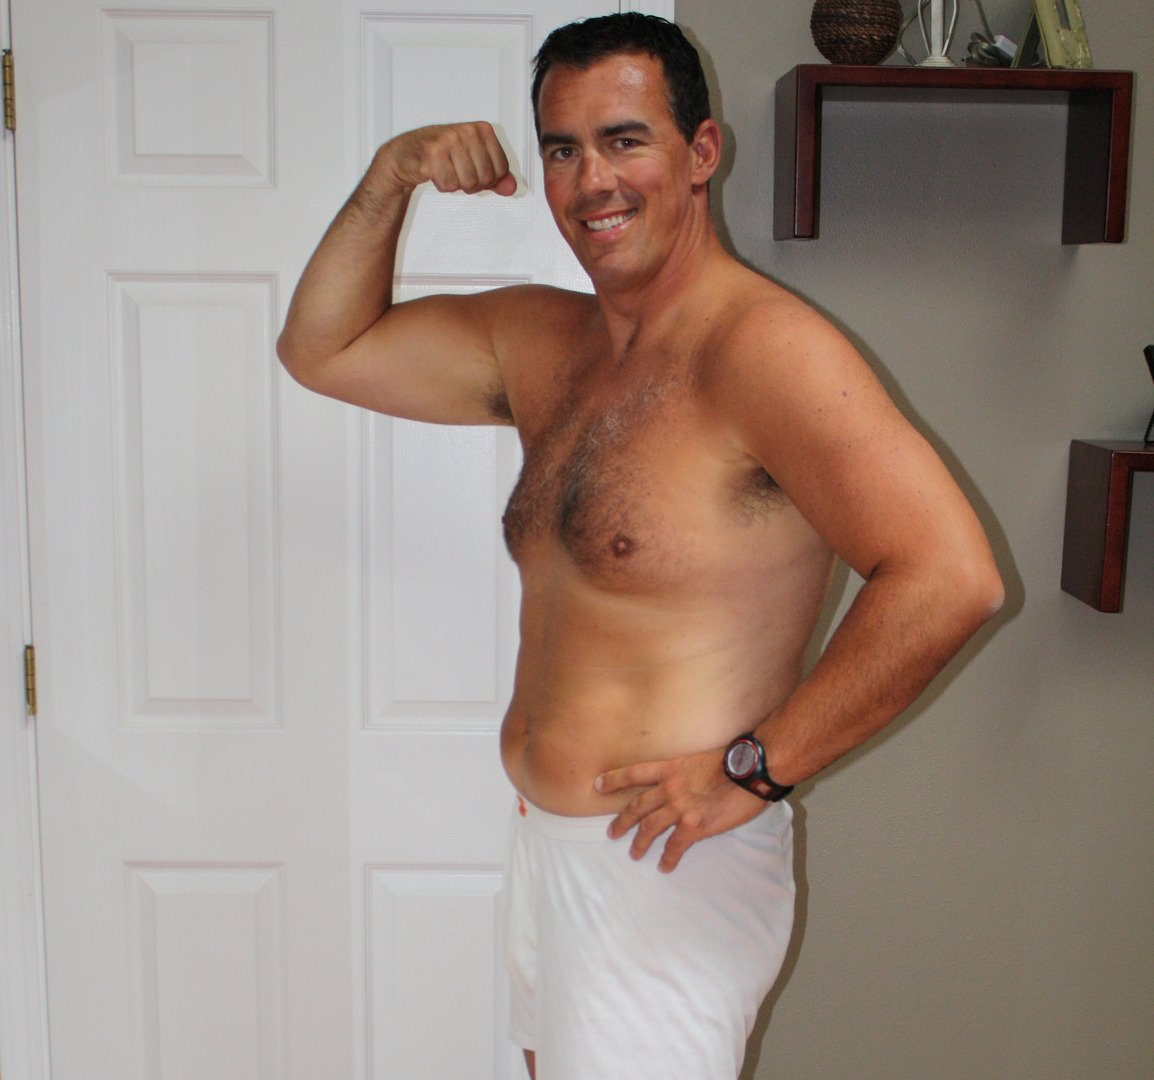 My Oregon beefy buddy from  http:// GlobalFight.com  &nbsp;   #oregon #pictures #man #men #flexing #upper #body #strength #hairy #chest #pecs #daddy<br>http://pic.twitter.com/LrgNN6pBCX